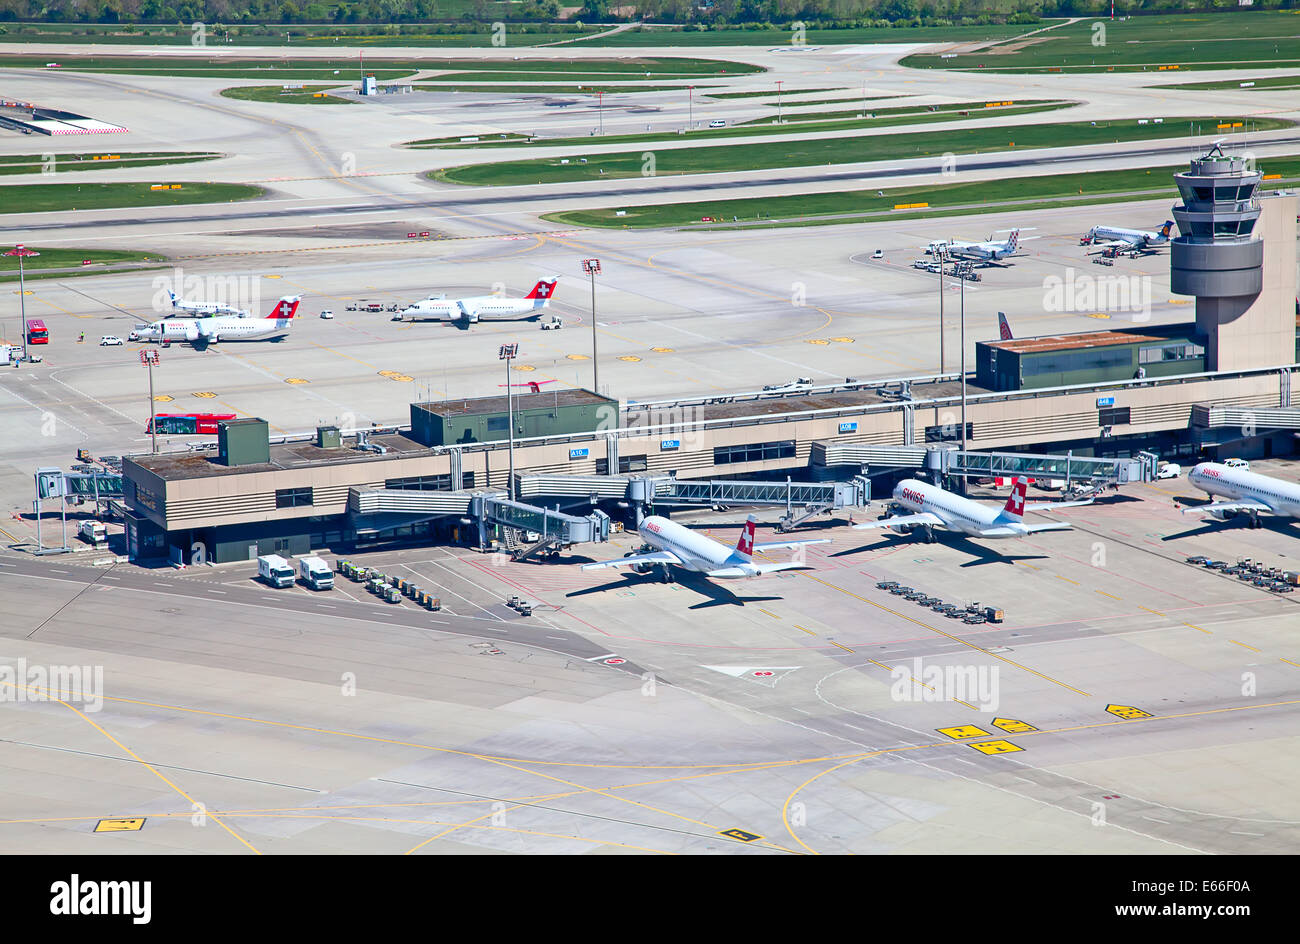 ZURICH - APRIL 17: Aircraft leaving Zurich airport on April 17, 2014 in Zurich, Switzerland. Zurich airport is home - Stock Image